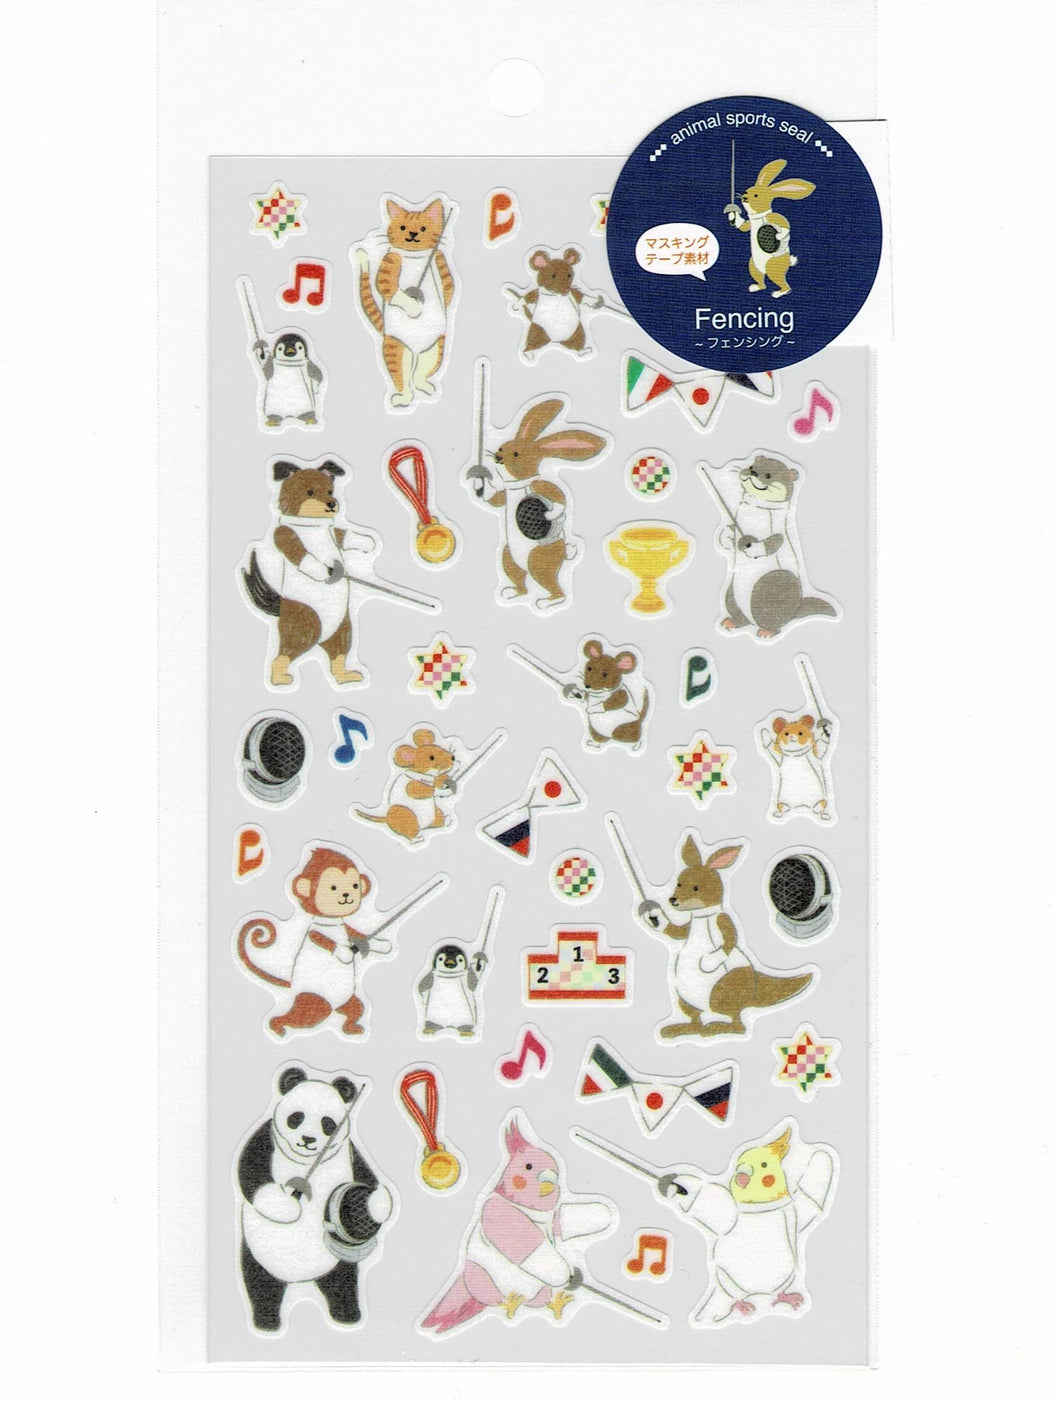 Cockatiel Penguin Cat Mouse Dog Rabbit Otter Panda Monkey Stickers Fencing